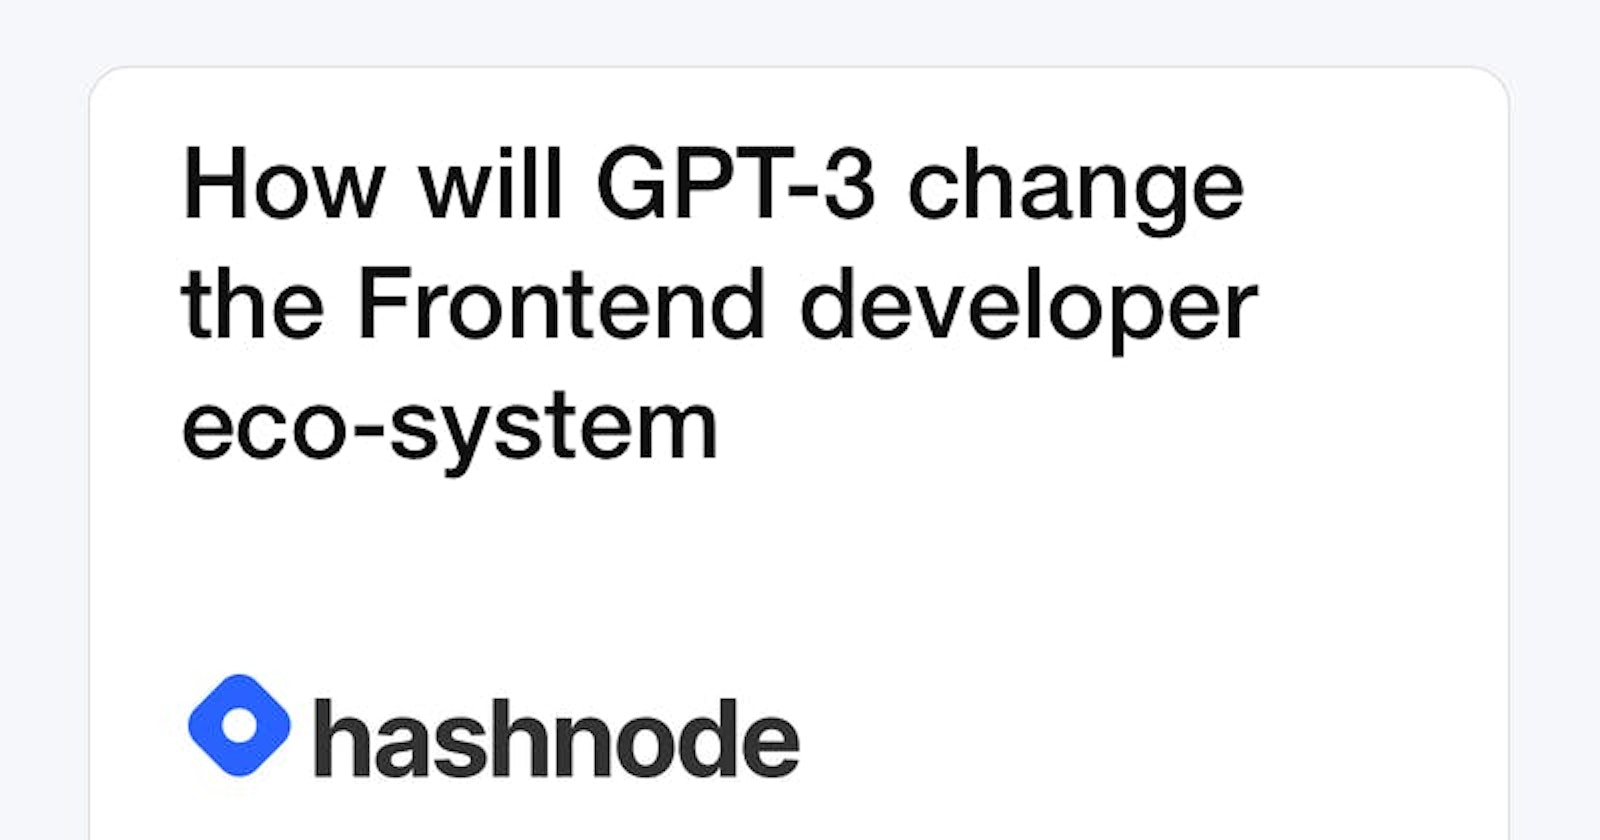 How will GPT-3 change the Frontend developer eco-system